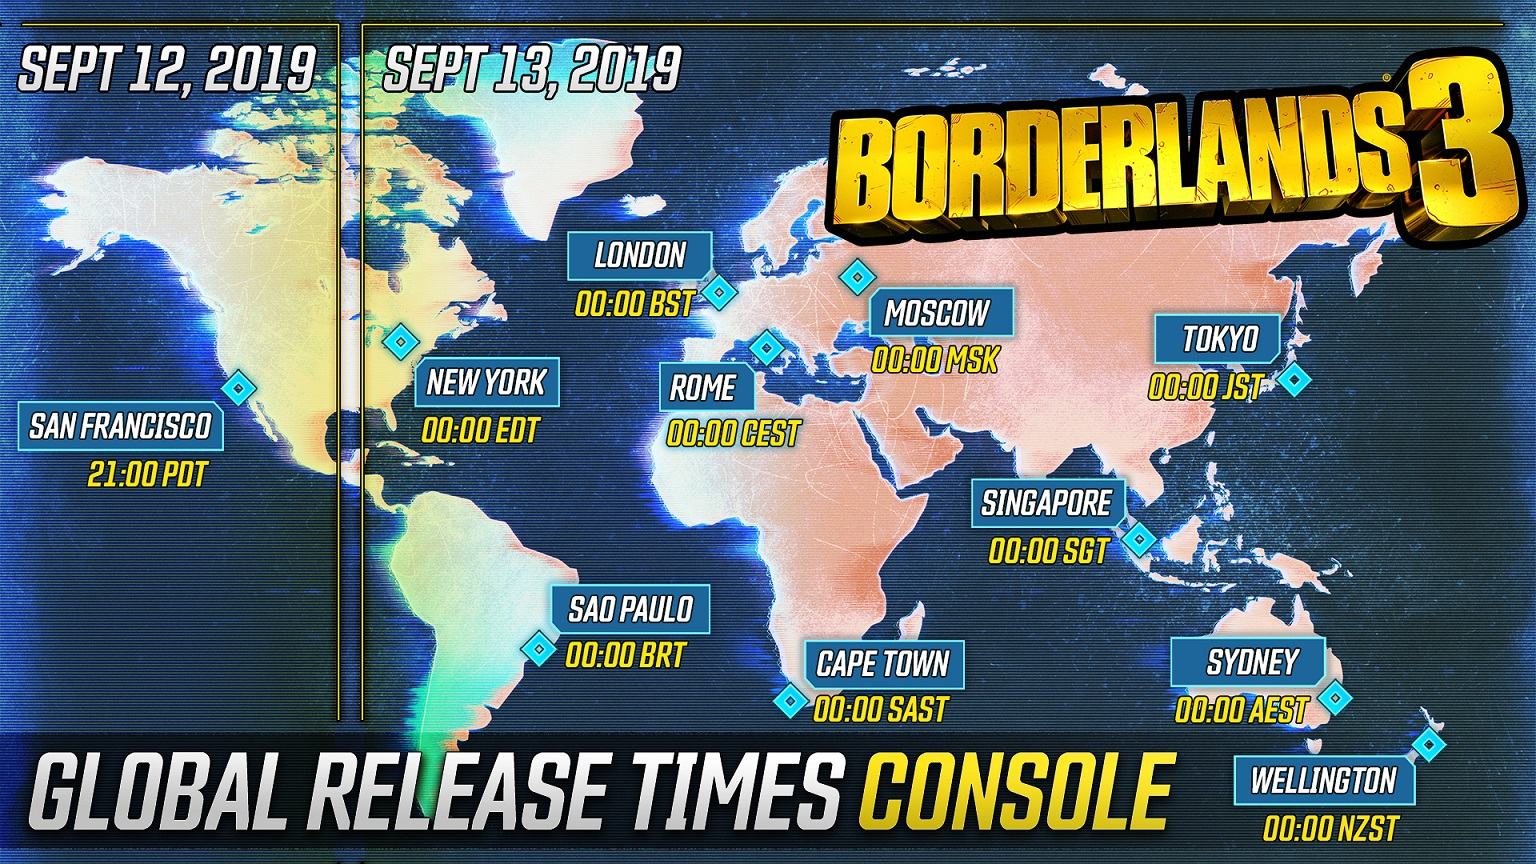 Console Launch Times